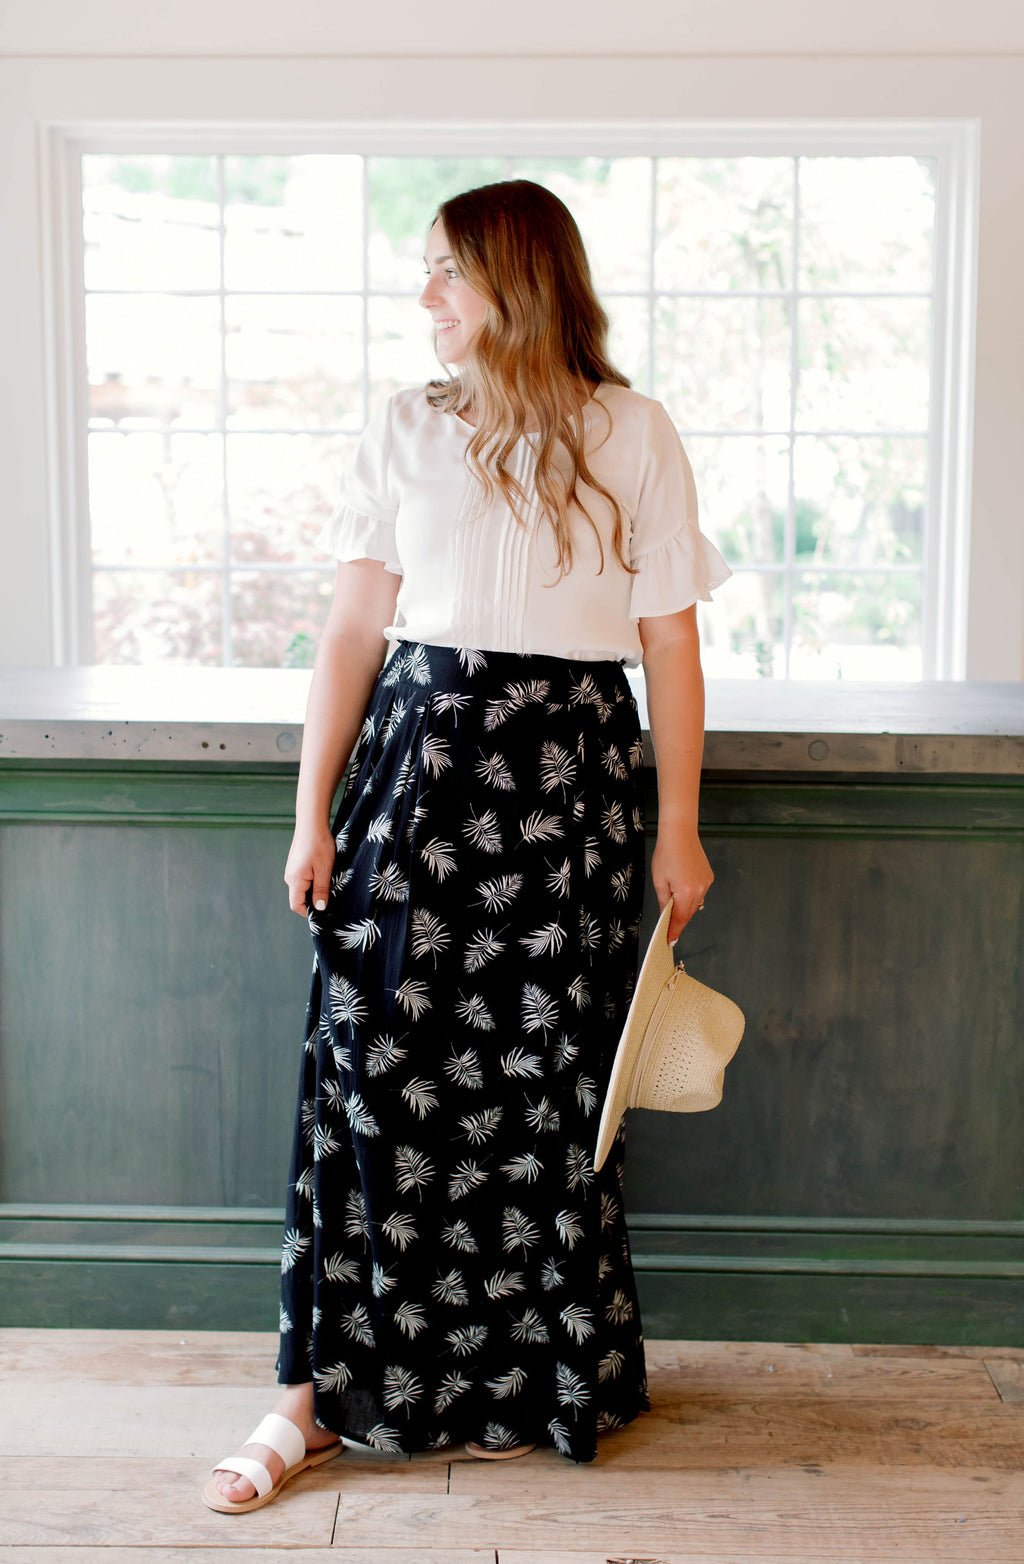 'Patience' Skirt